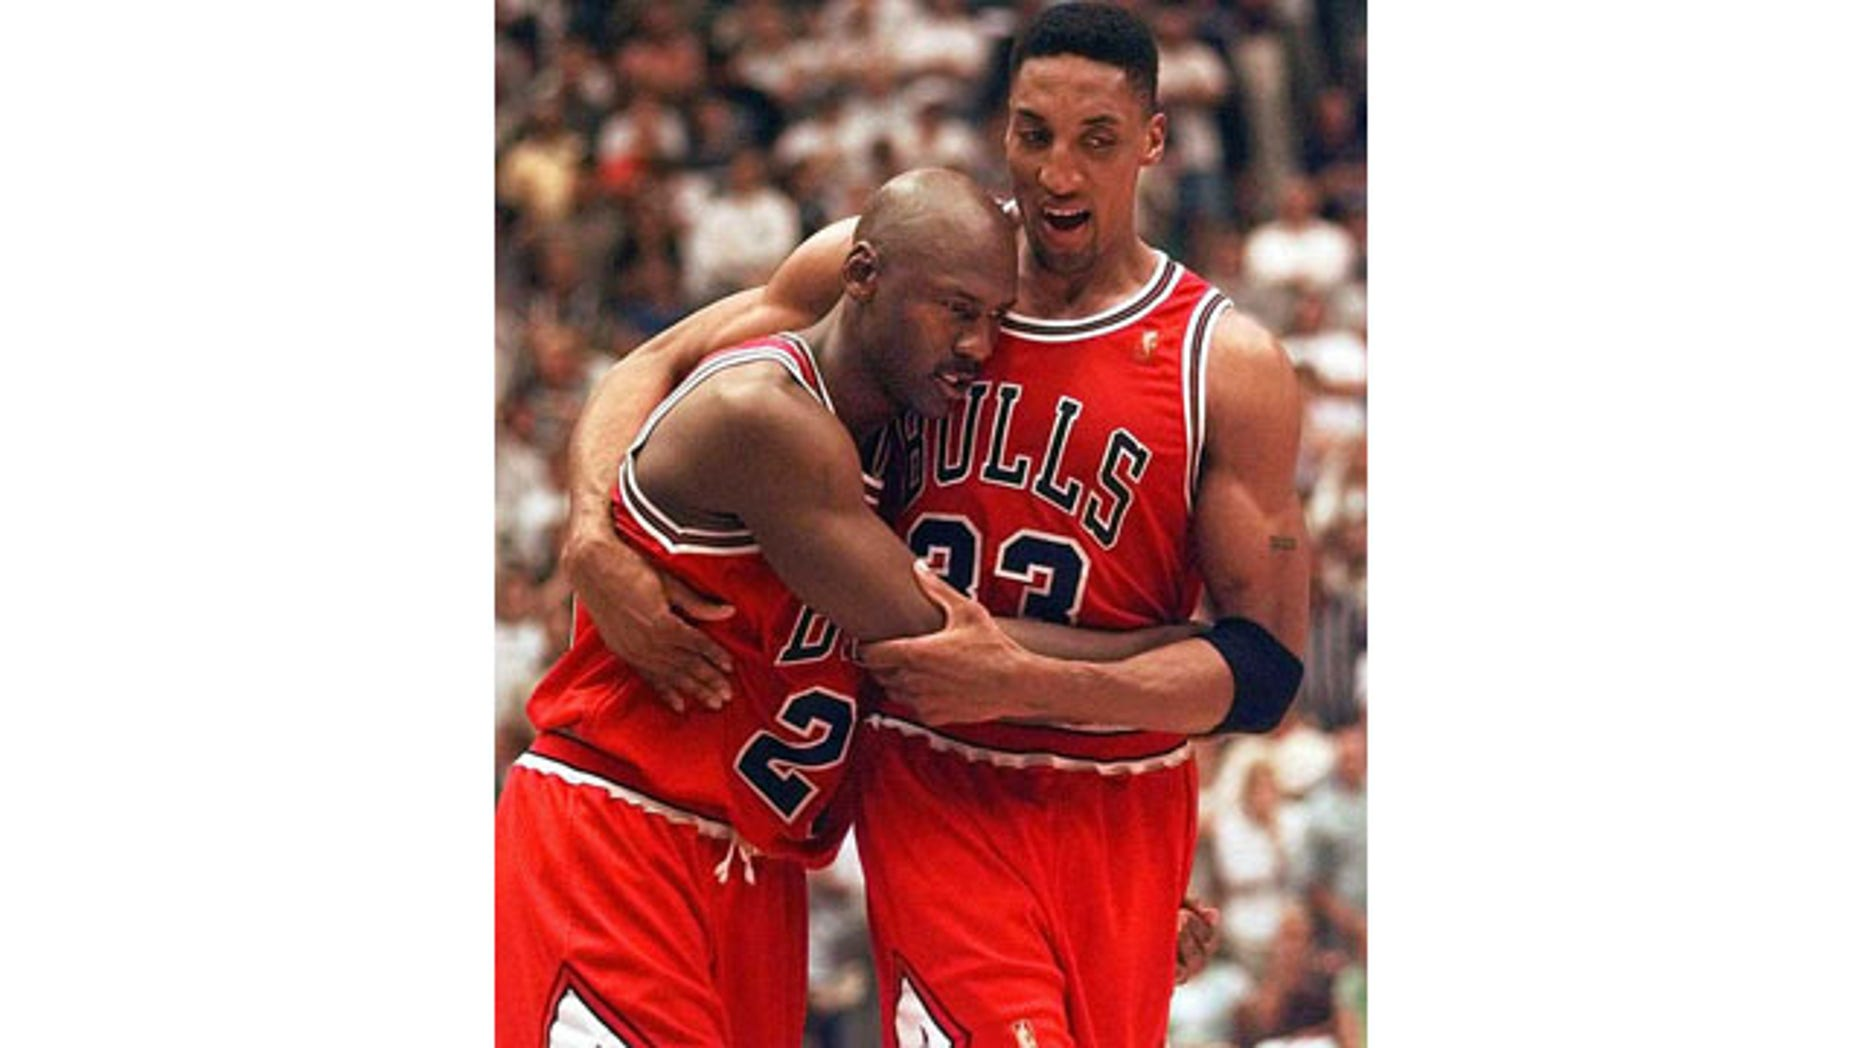 June 11, 1997: Scottie Pippen, right, helps Michael Jordan off the floor following Game 5 of the NBA Finals between the Chicago Bulls and Utah Jazz. Jordan scored 38 points in Chicago's 90-88 win despite playing with a severe stomach flu. (AP Photo)